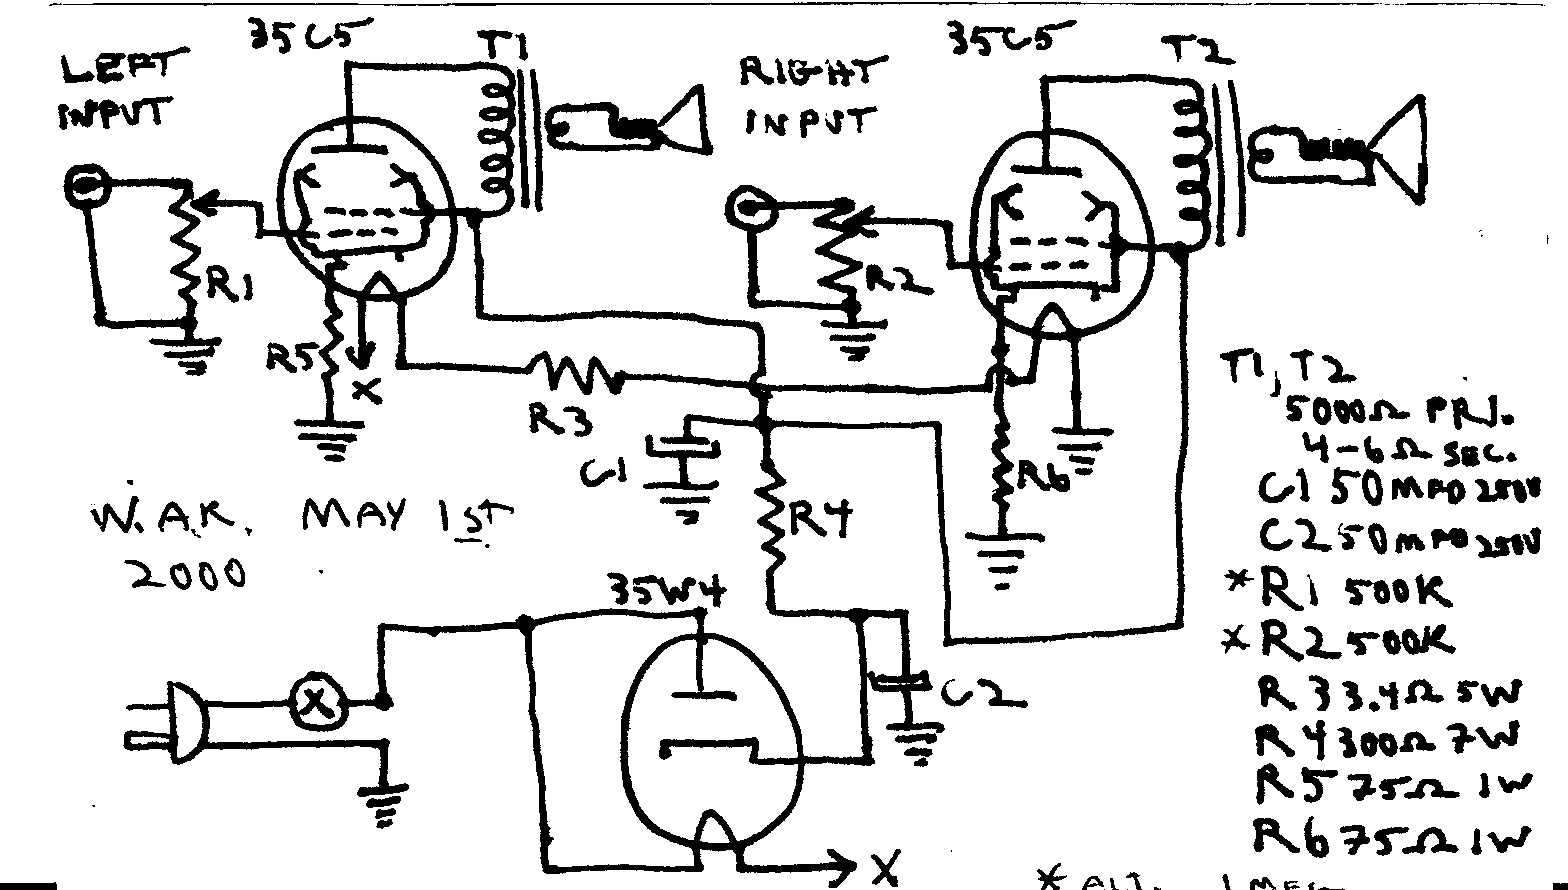 Tube Amplifier Circuit http://www.wkinsler.com/radios/three_tube_stereo_amp.html